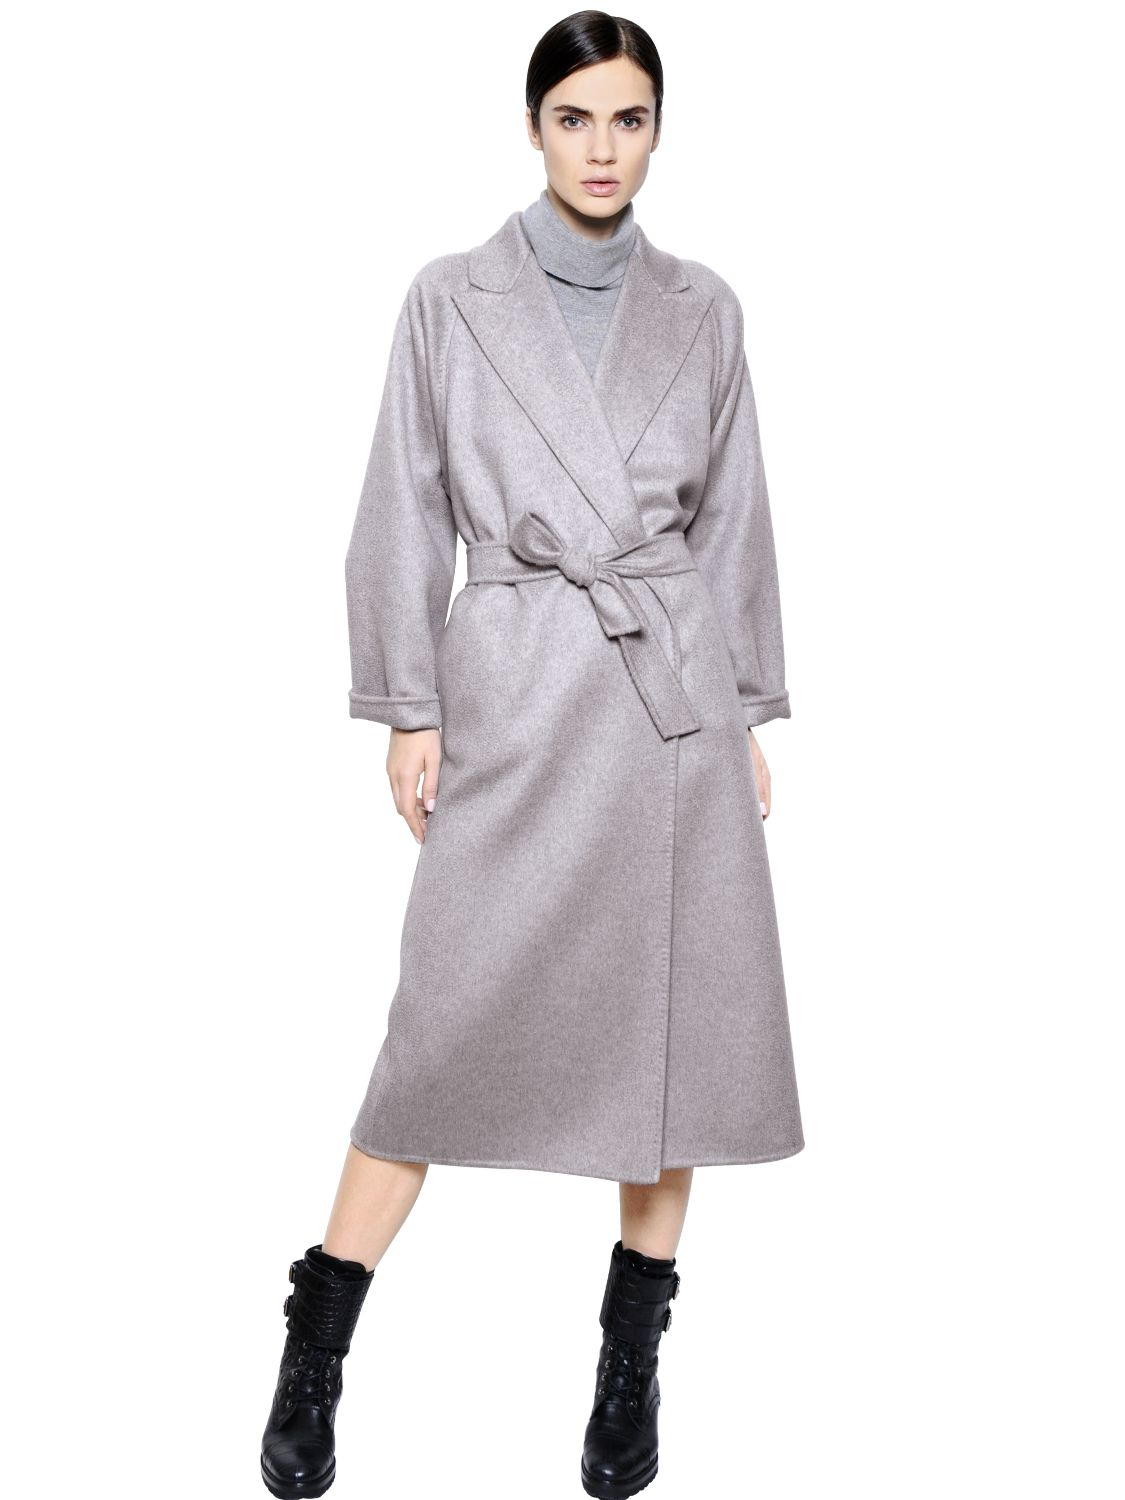 Max mara Belted Cashmere Coat in Gray   Lyst